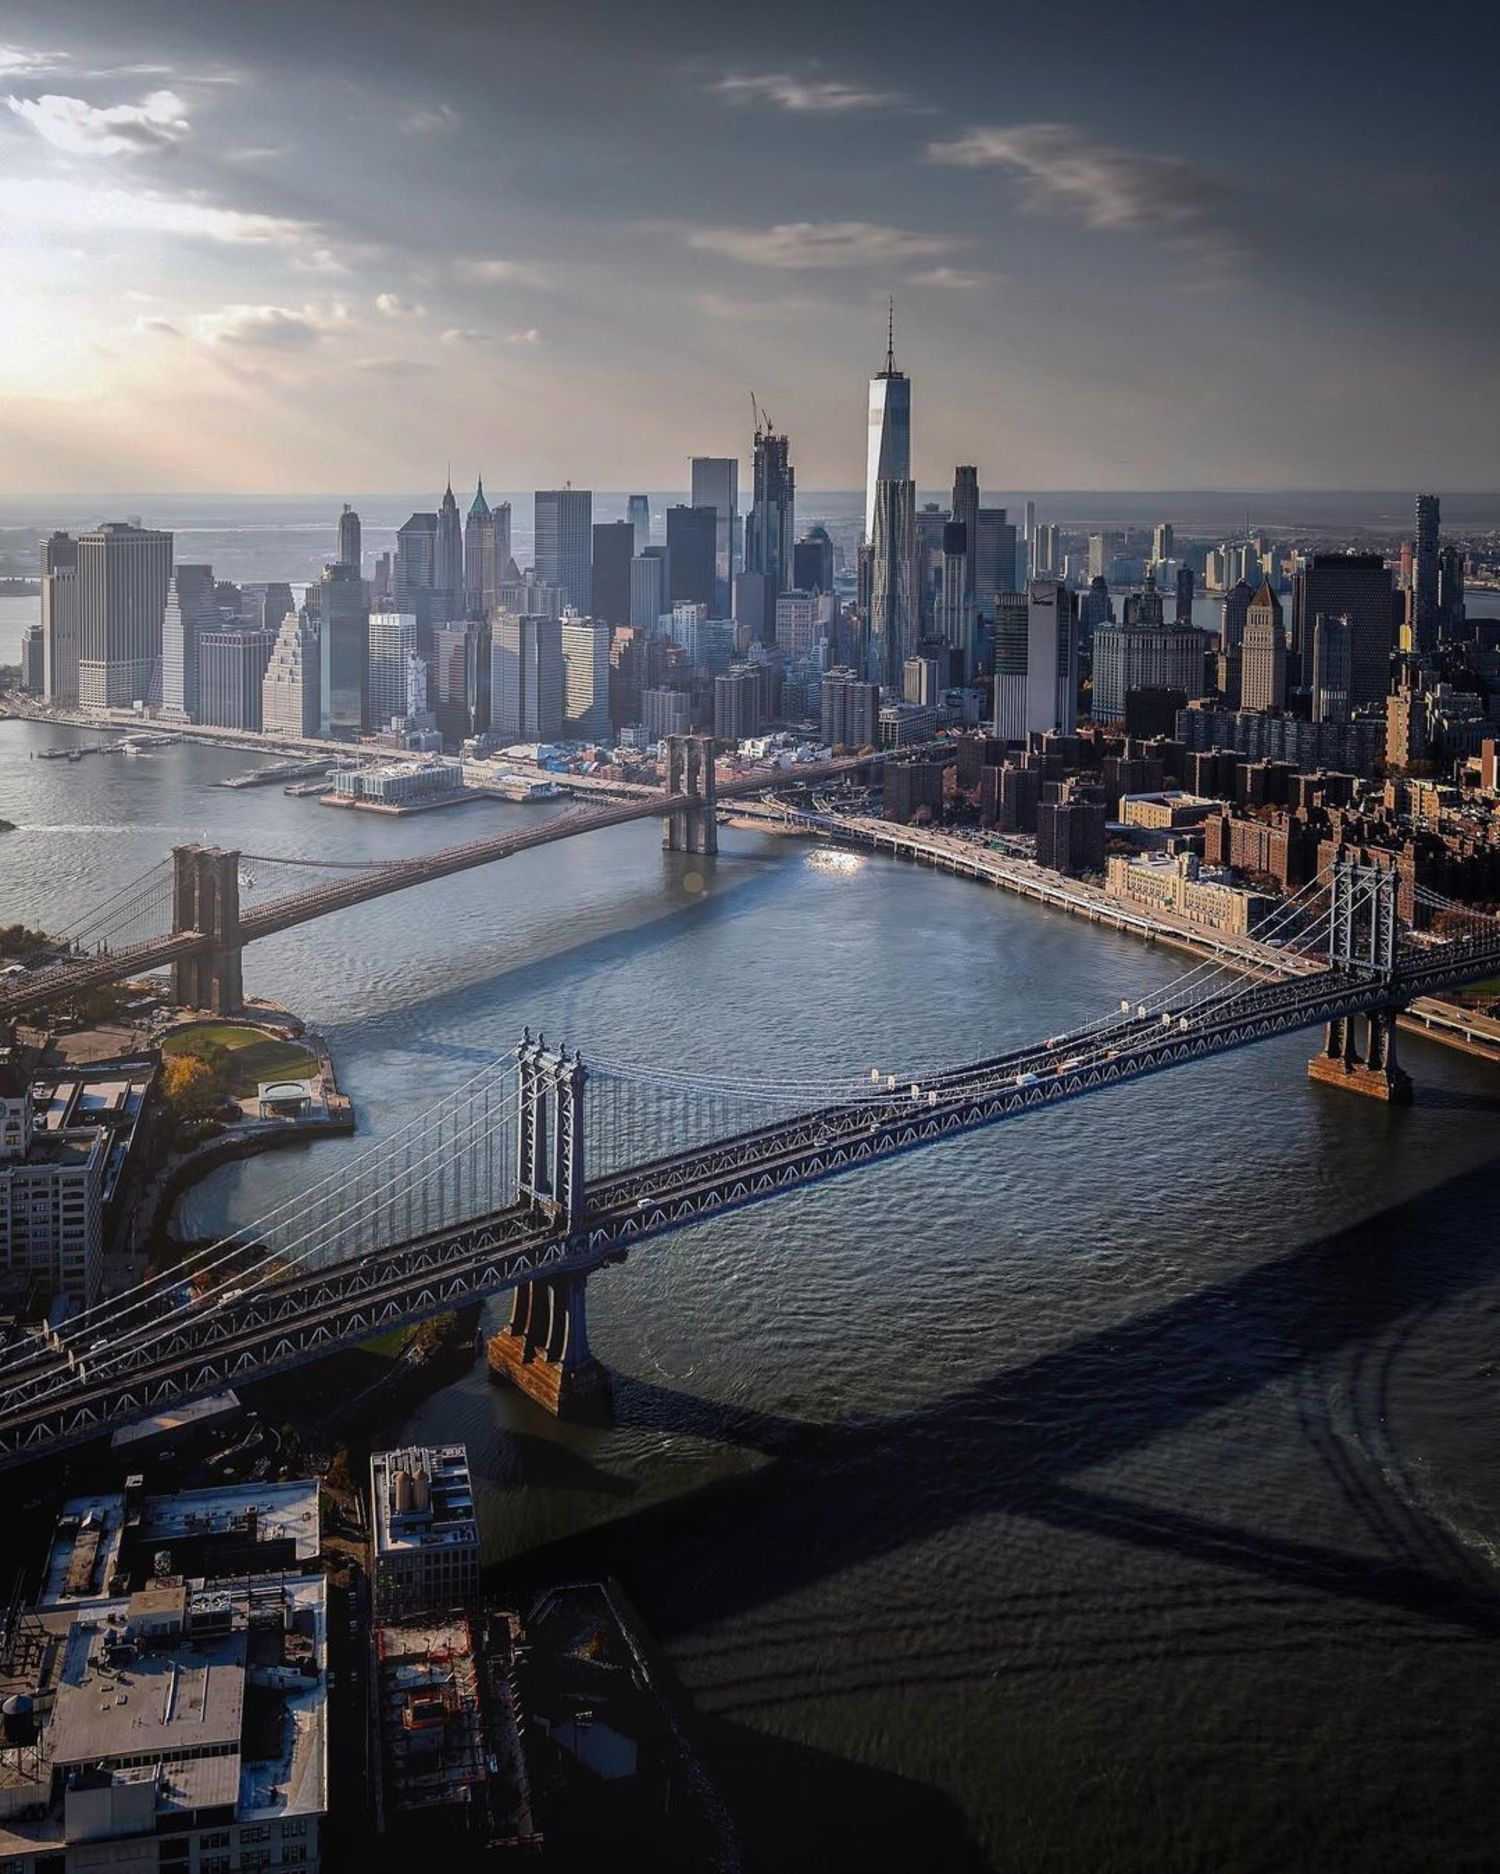 East River and Lower Manhattan